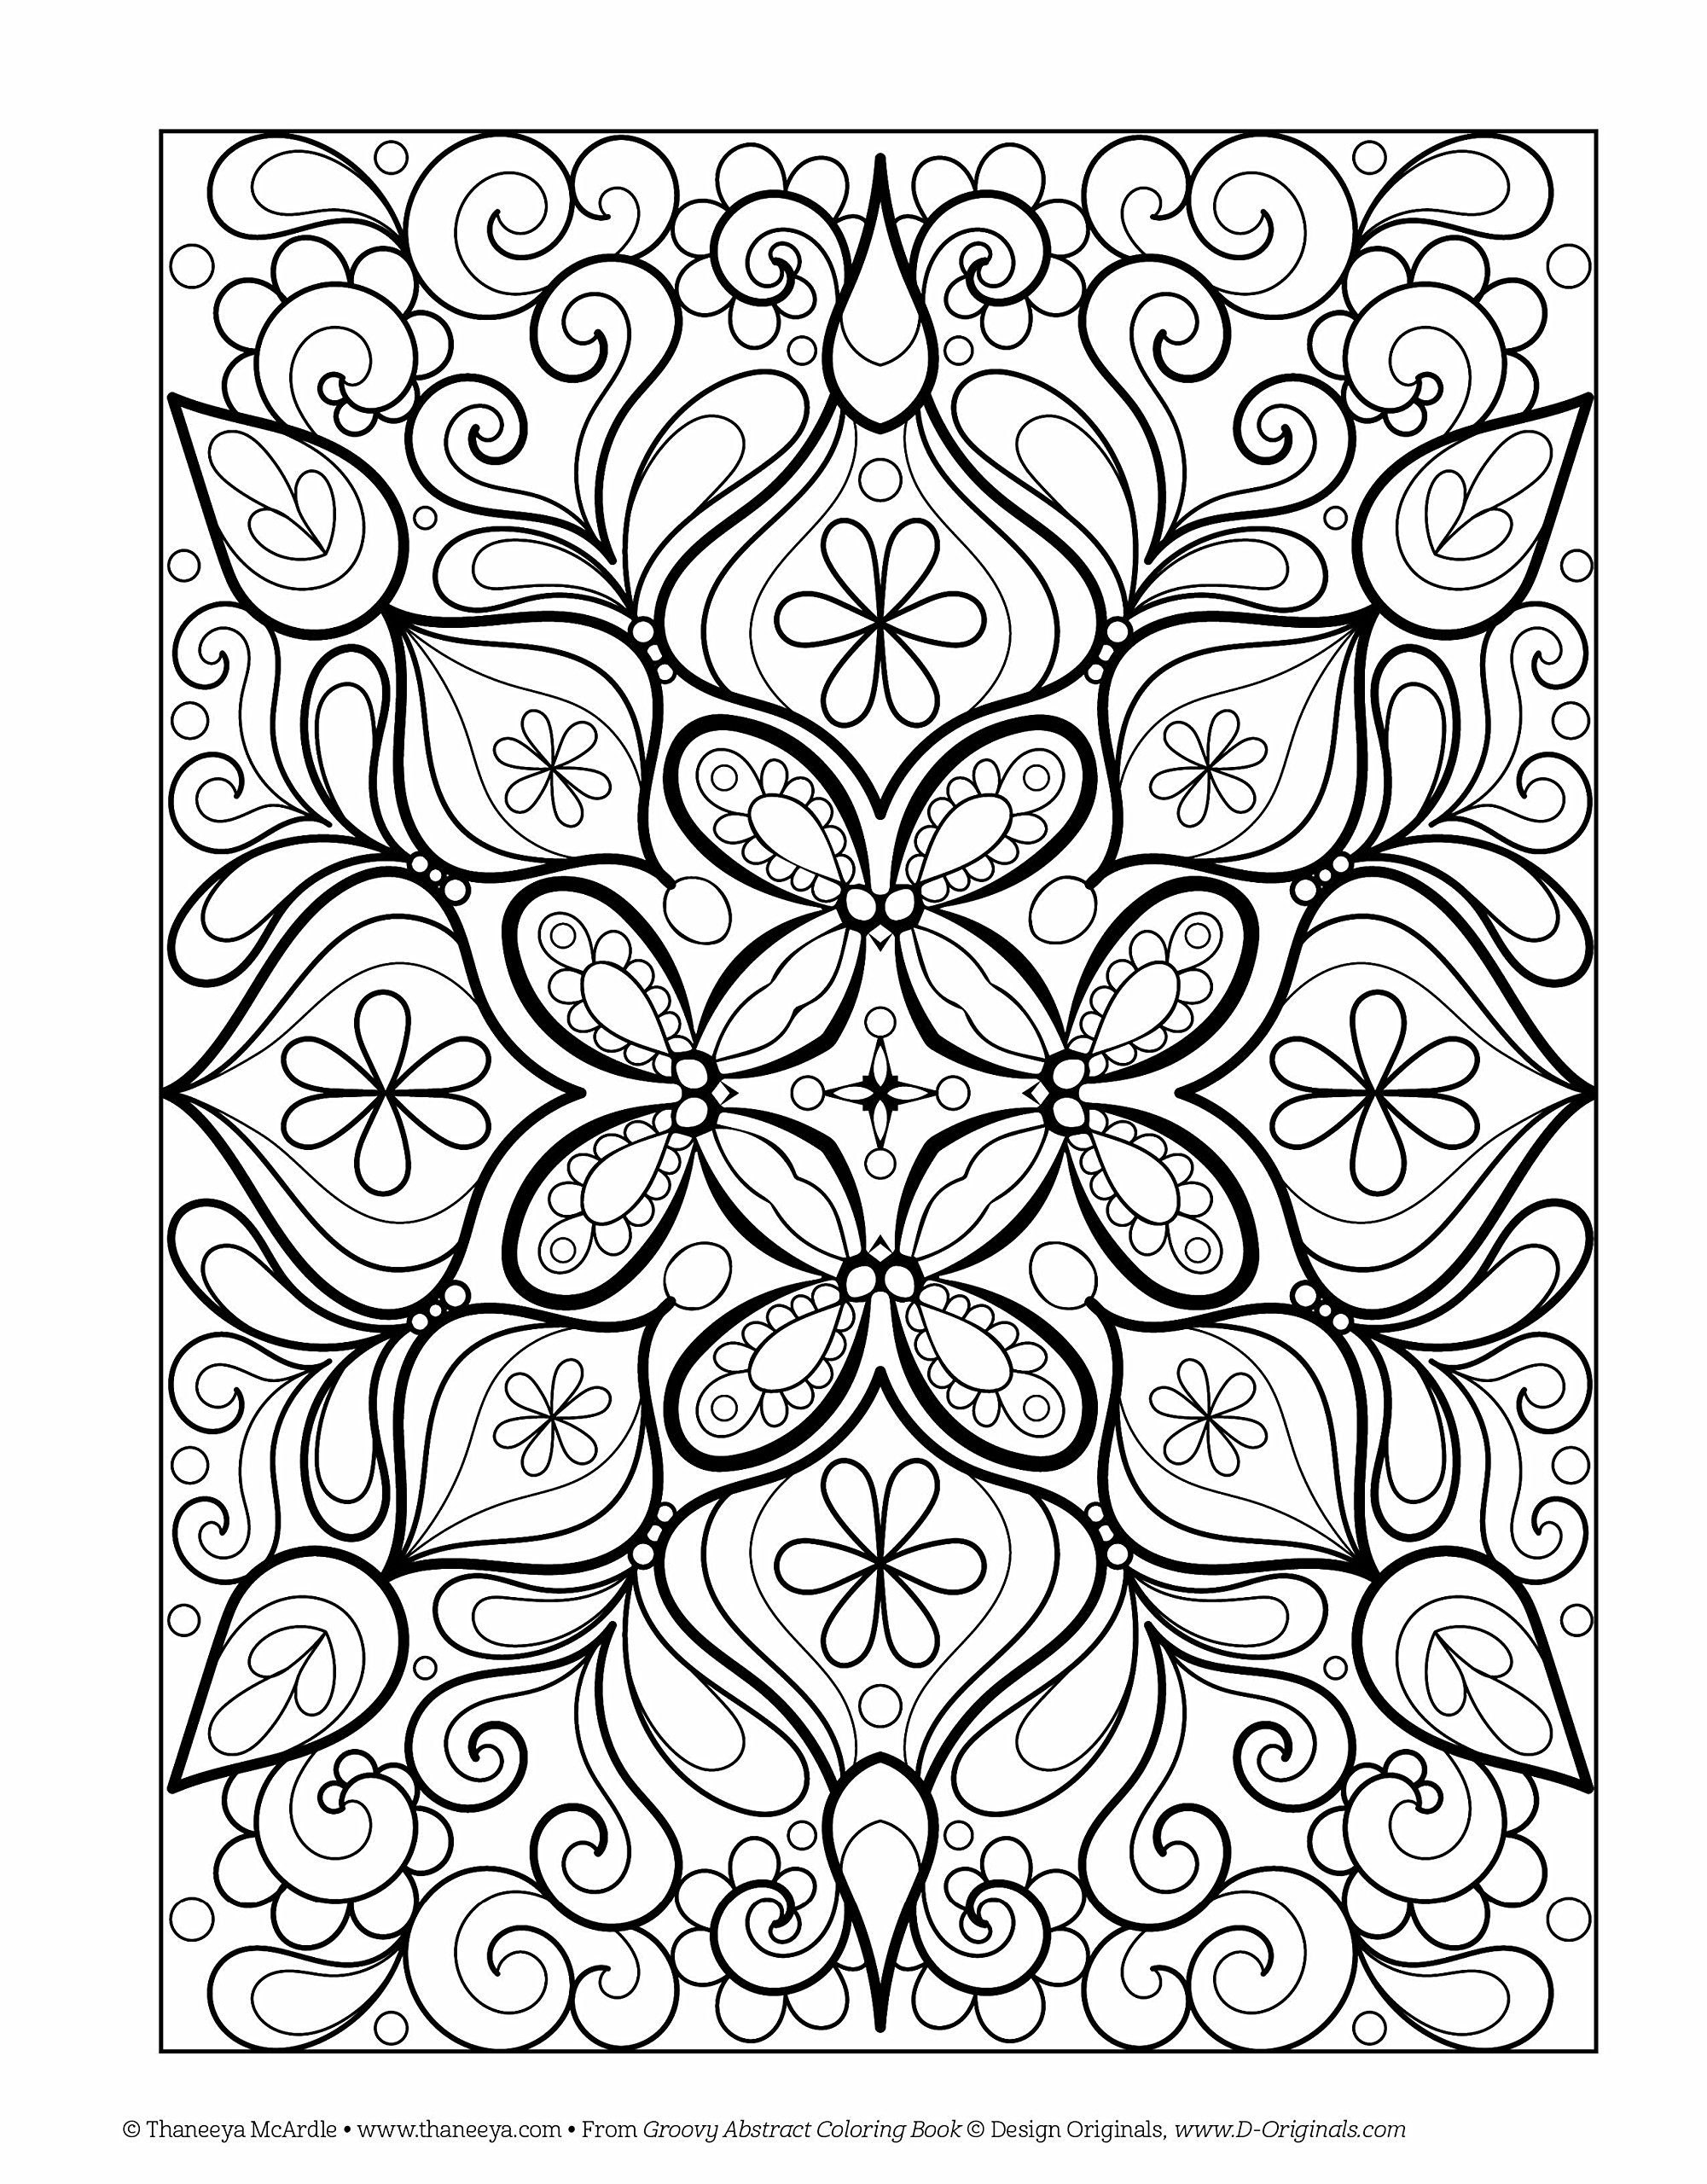 Amazon.com: Groovy Abstract Coloring Book (Design Originals ...